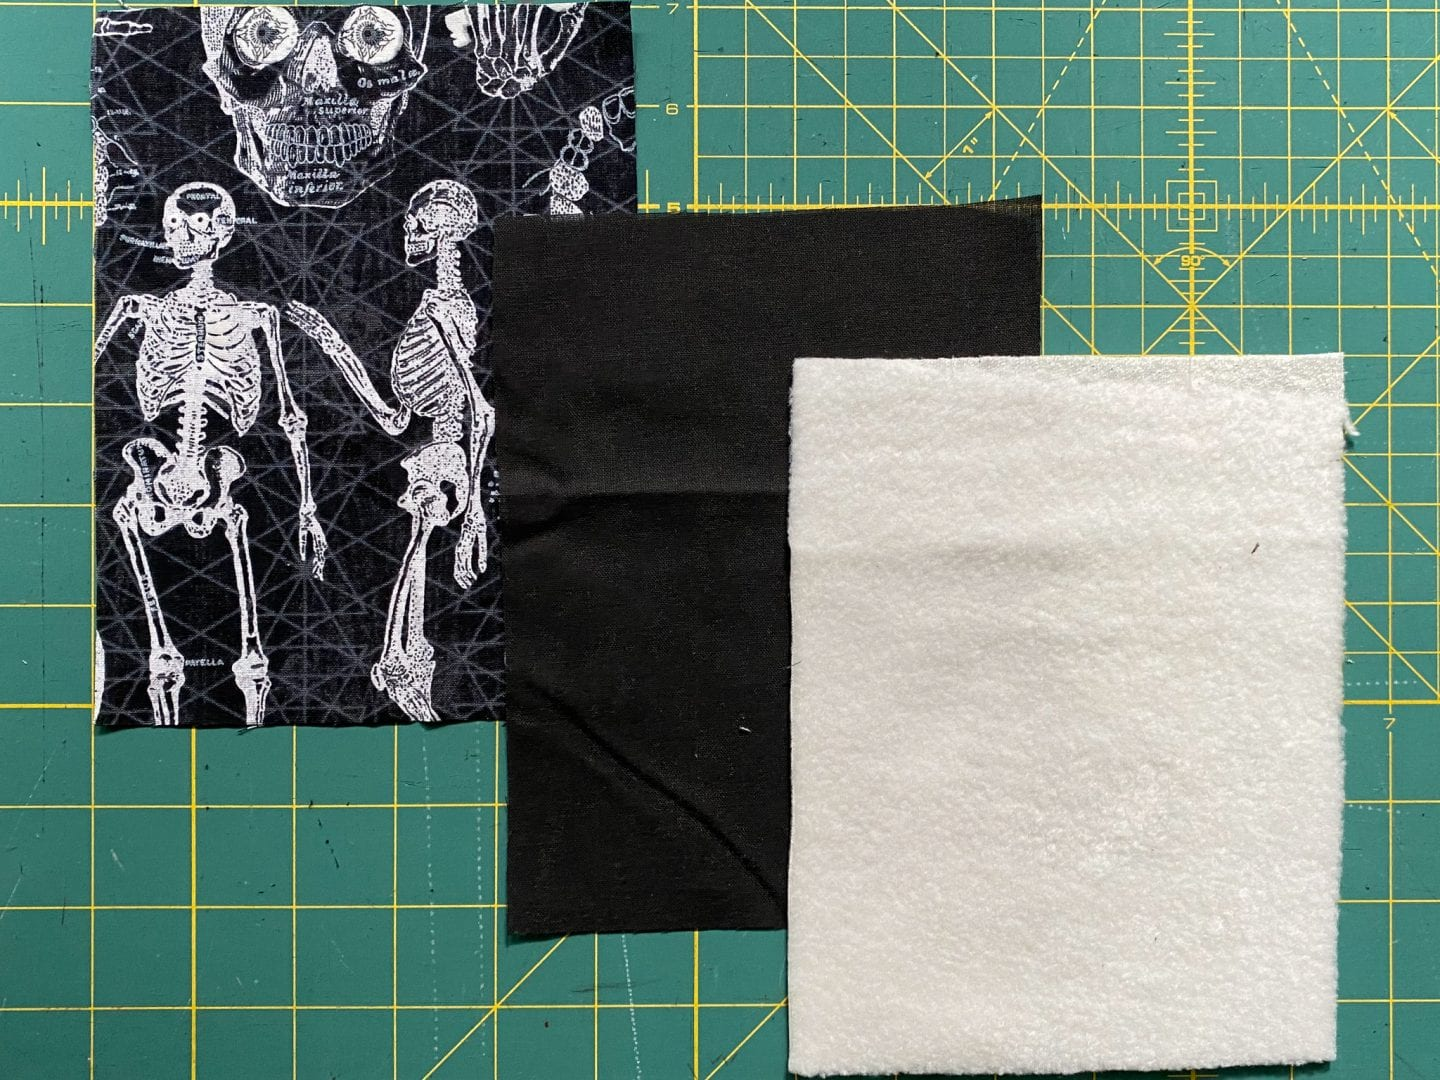 Image of three cuts of fabric, one with skeleton print, one of black interfacing, and one of cream-colored fleece.